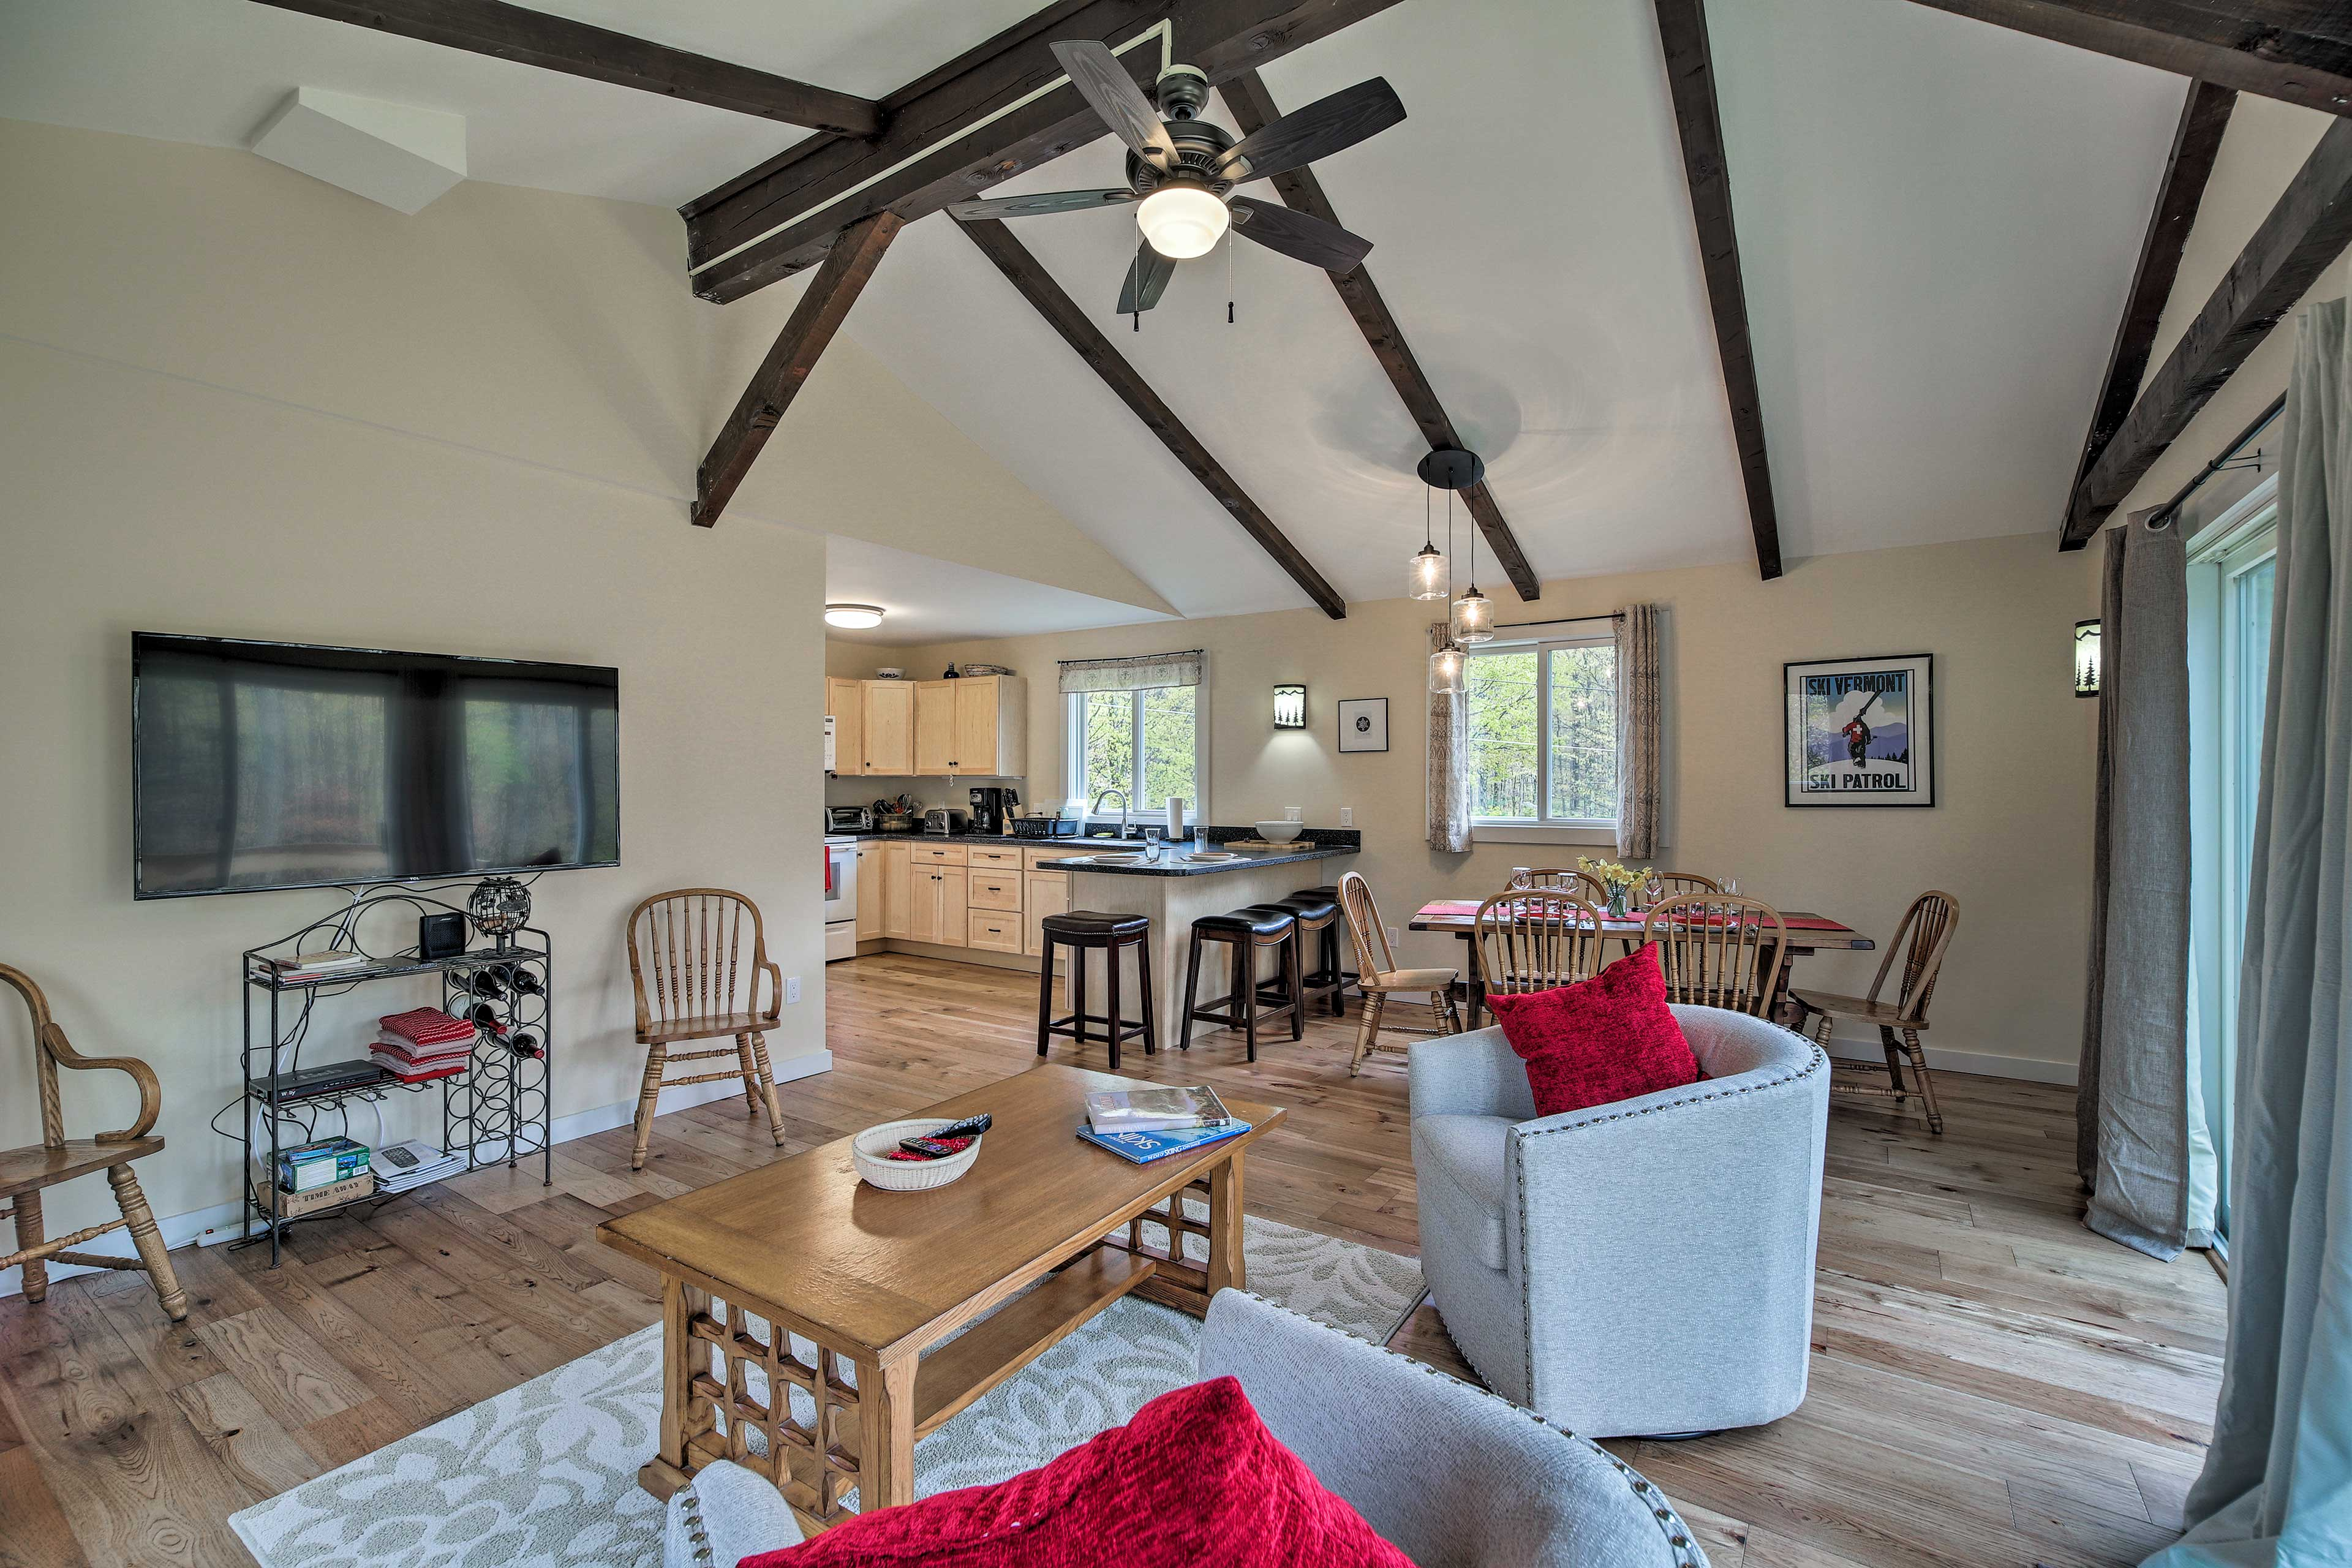 Ceiling fans will keep the air circulating.